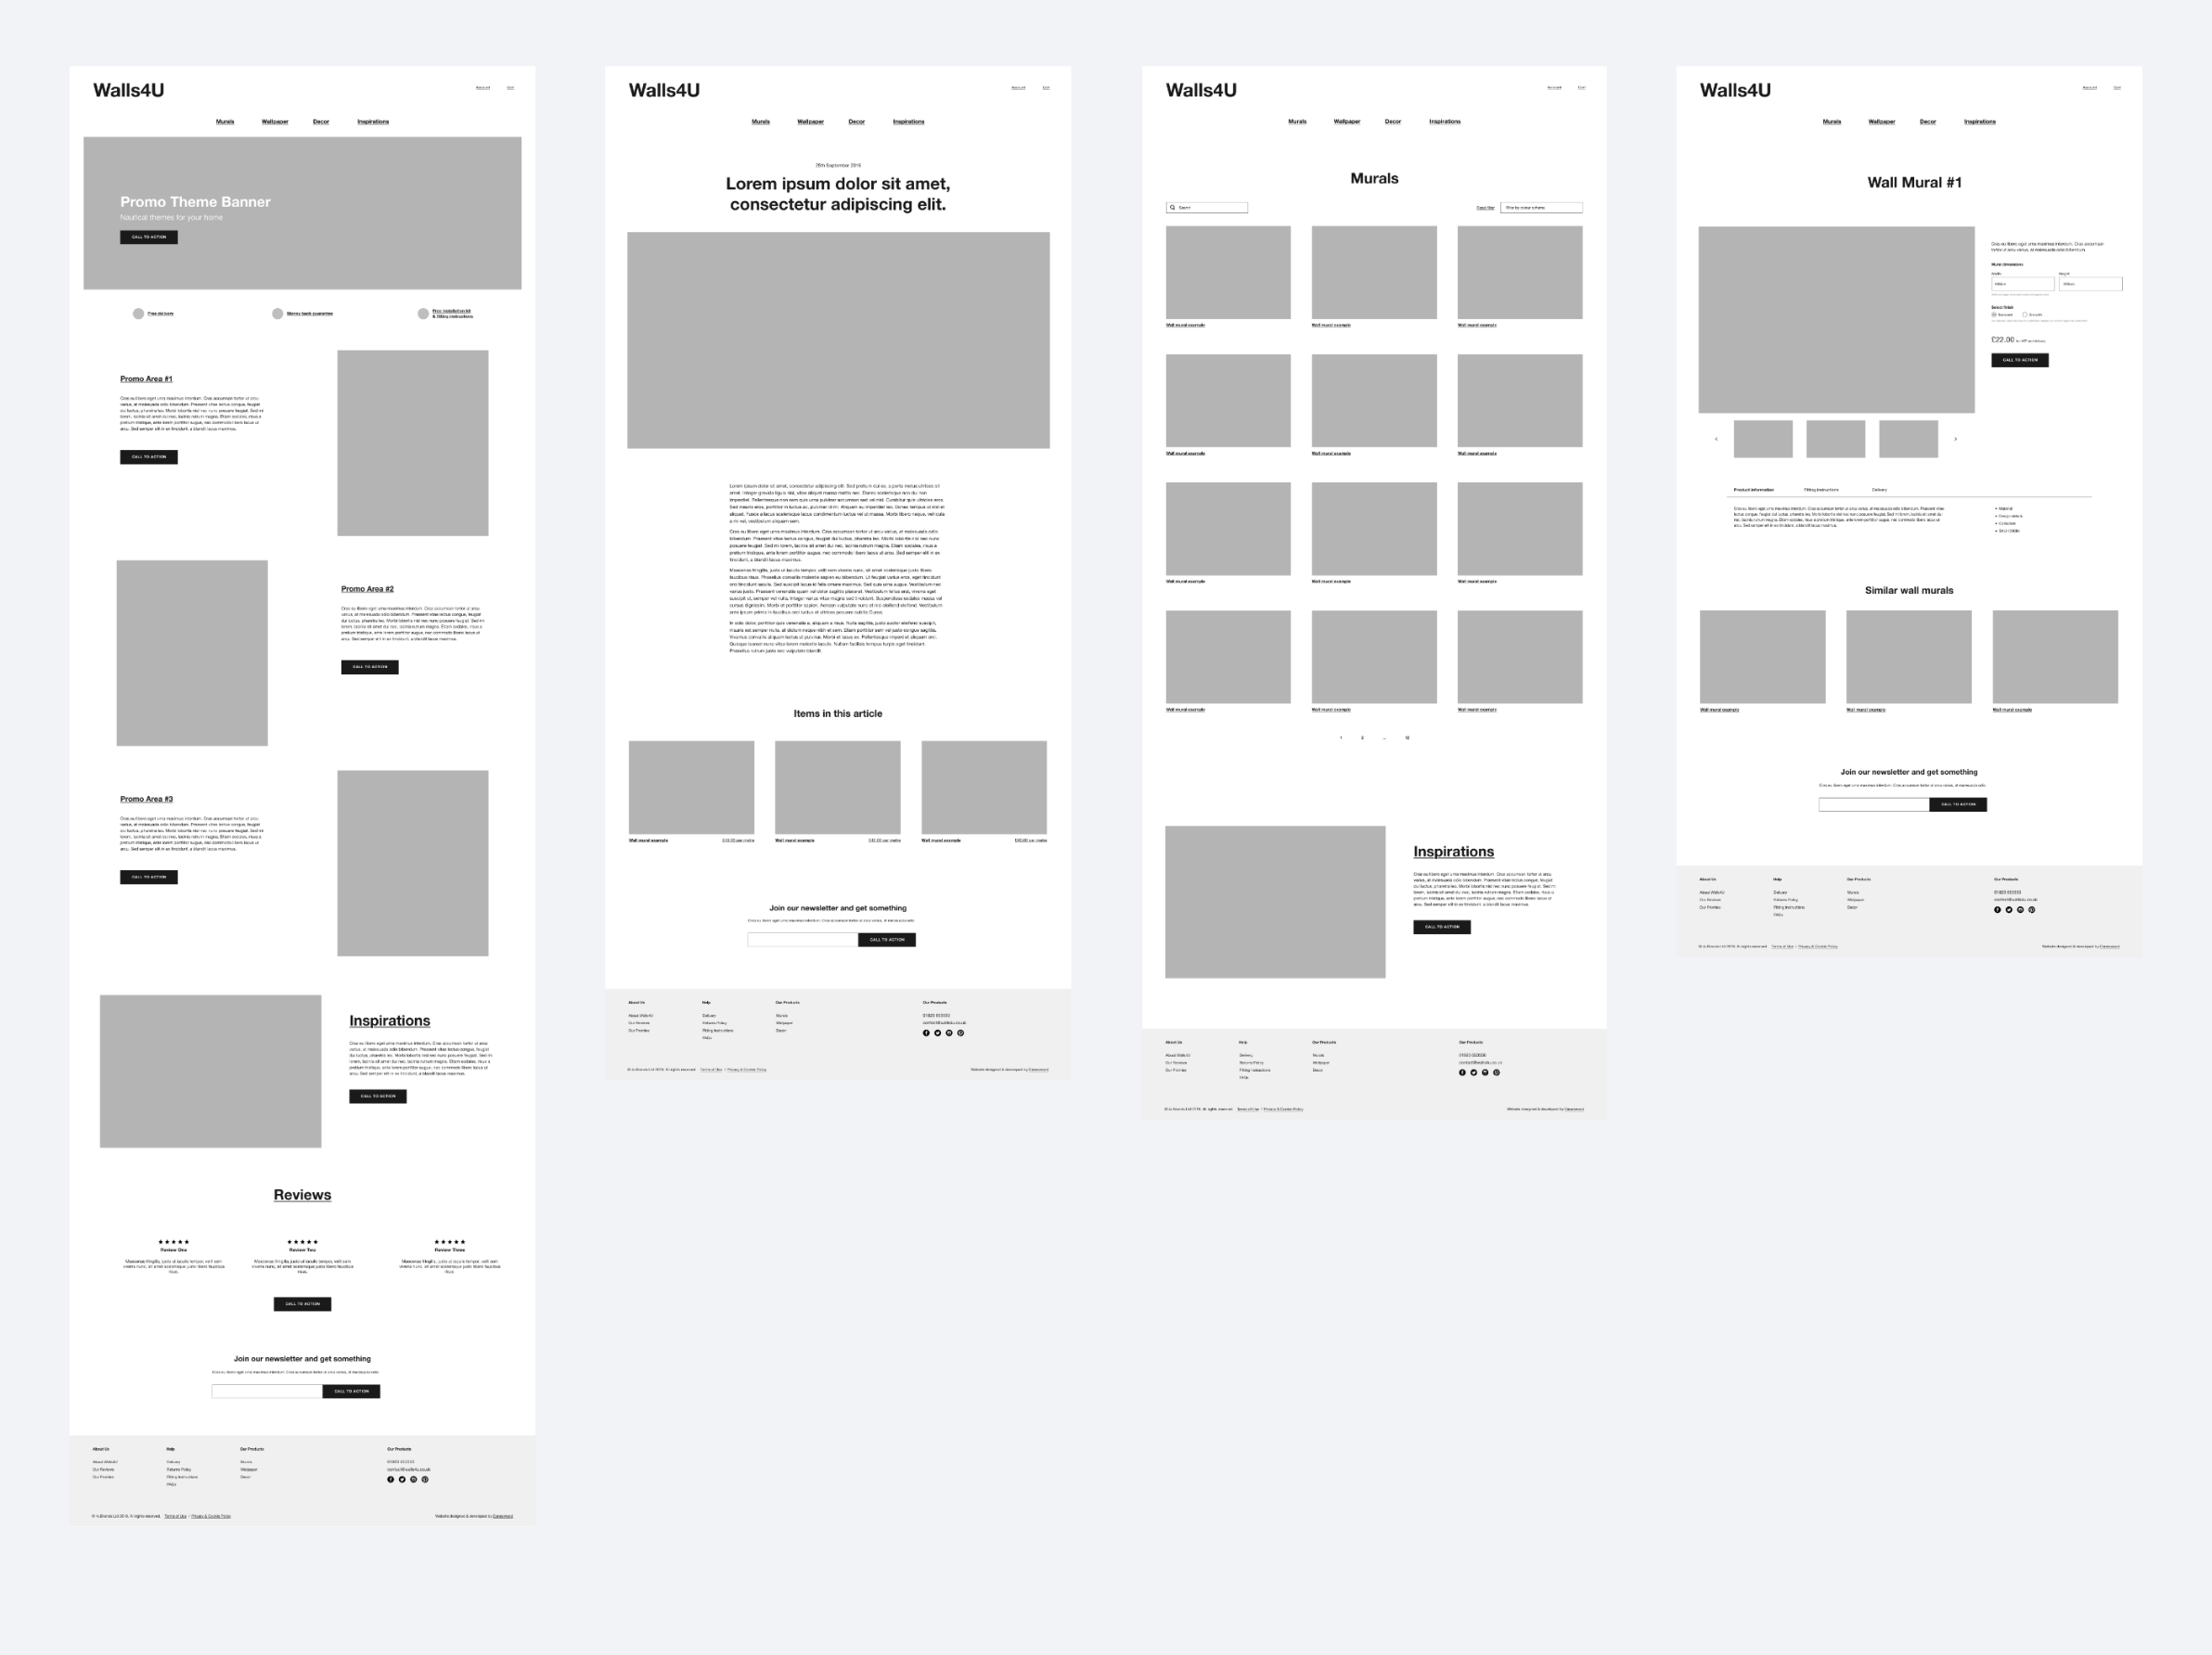 walls-wireframes@2x